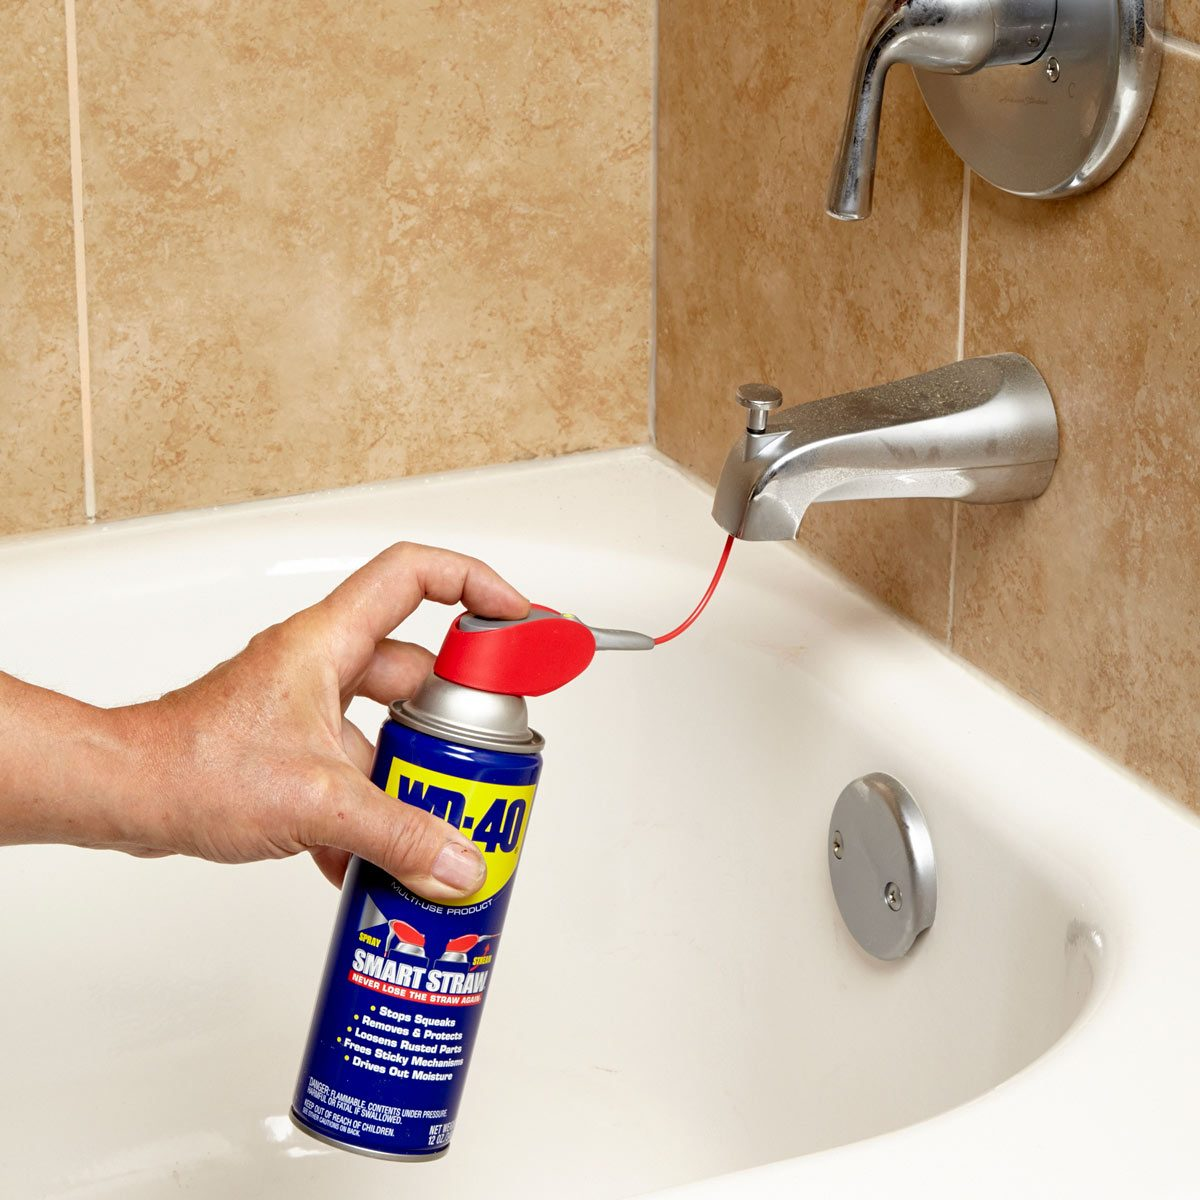 Diverter Lube Bathroom Tip From The Family Handyman